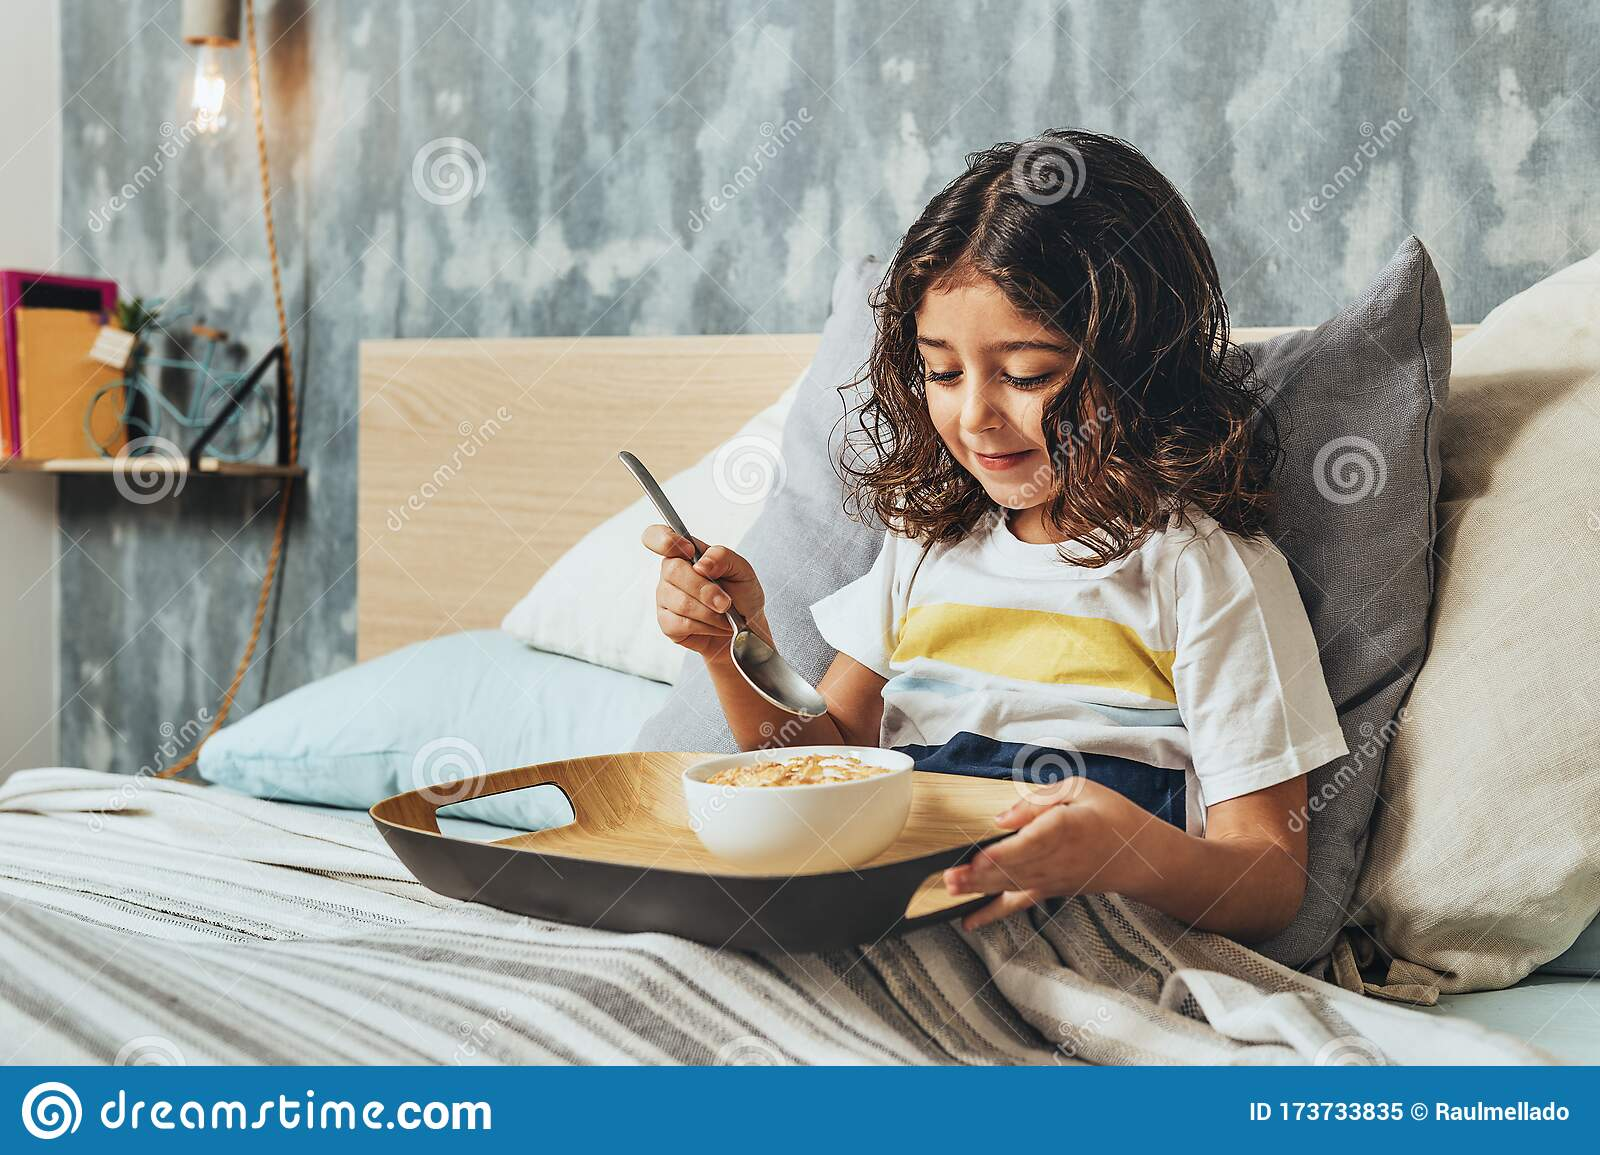 1 060 Bed Breakfast Kid Photos Free Royalty Free Stock Photos From Dreamstime